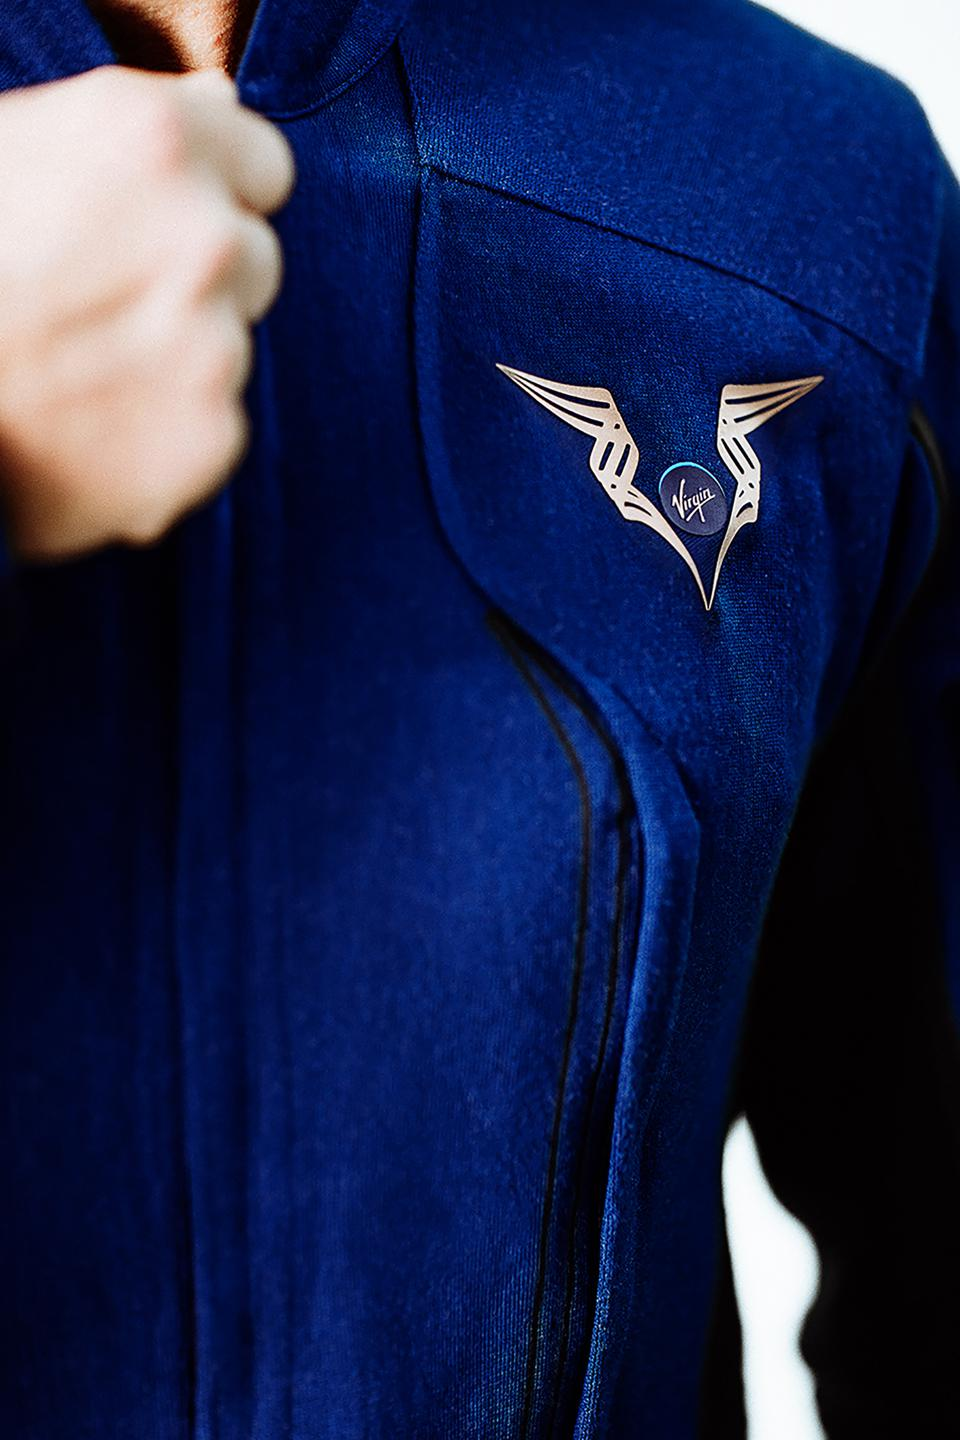 A Virgin Galactic emblem is shown as a pilot zips up their spacesuit.